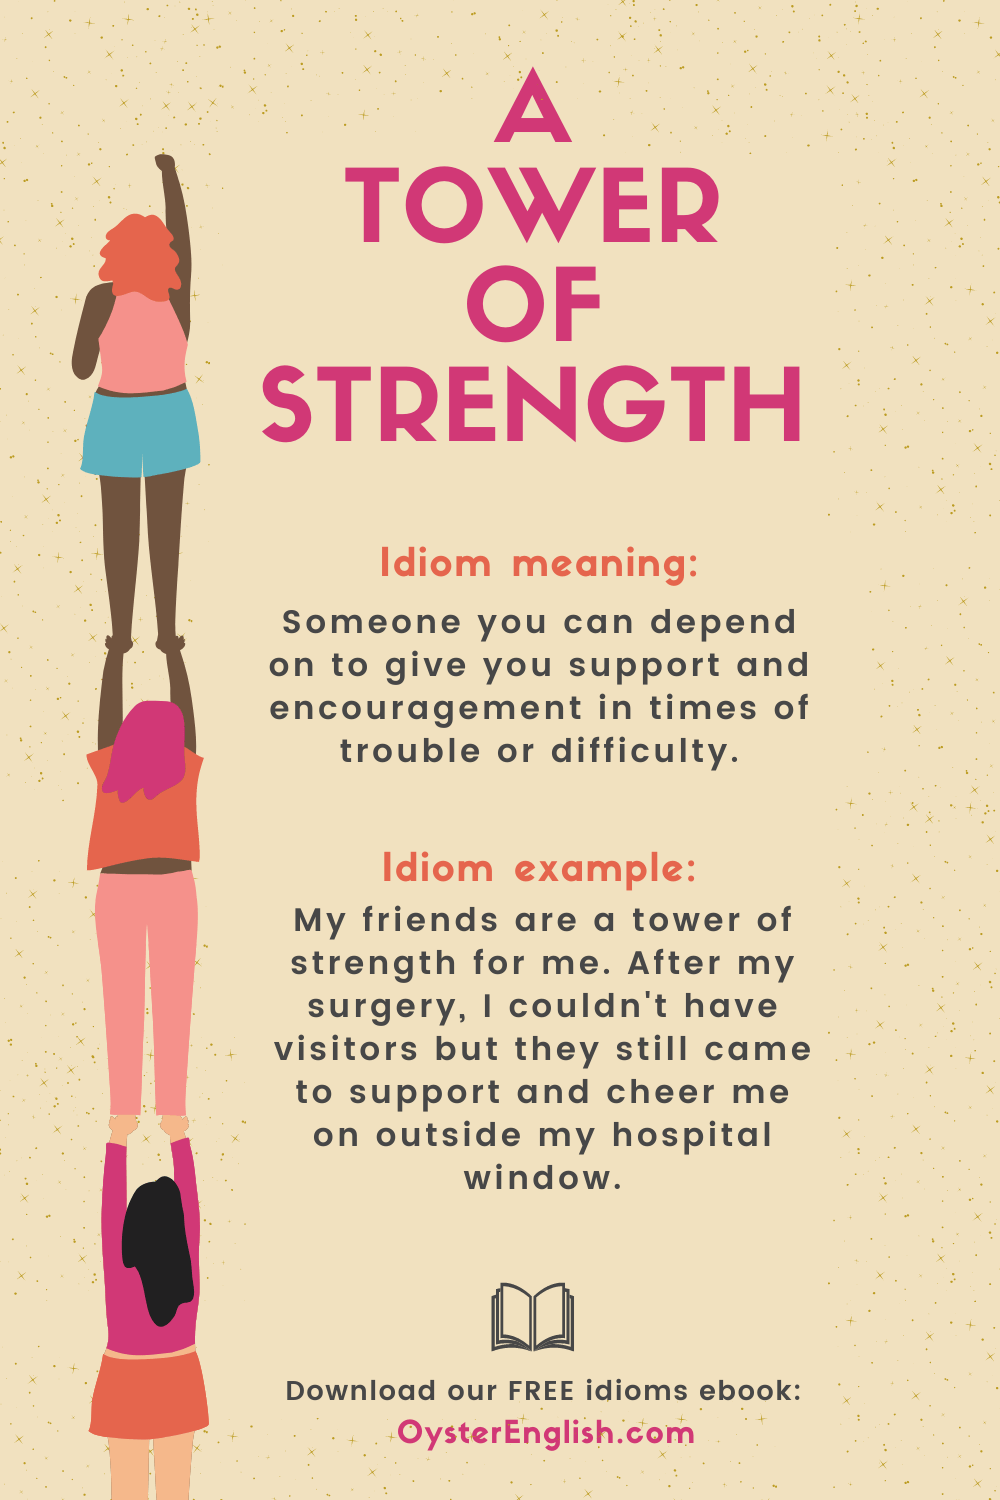 3 girls standing on top of each other cheering: My friends are a tower of strength for me. After my surgery, I couldn't have visitors but they still cheered me on outside my hospital window.